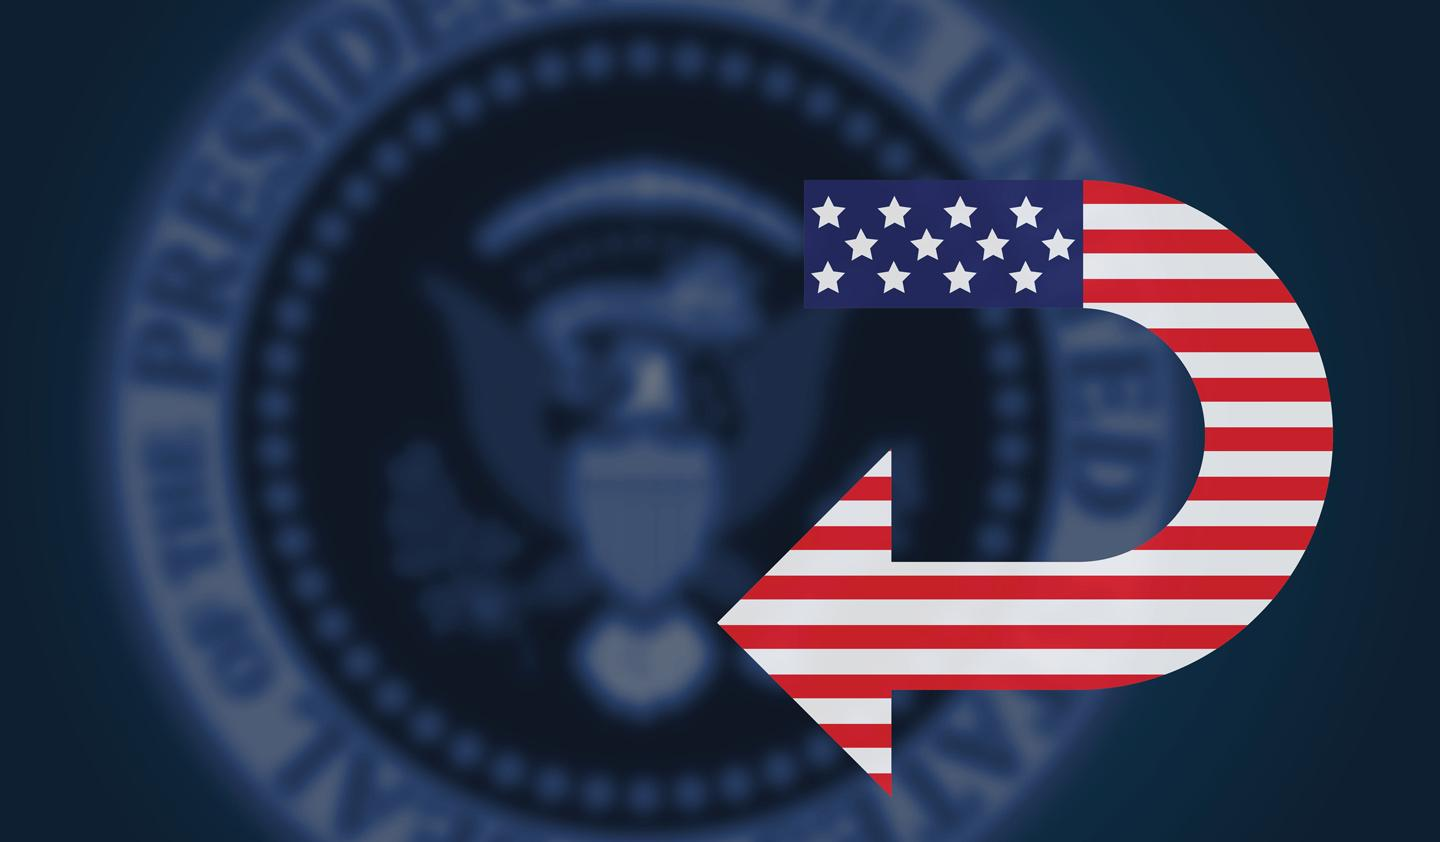 Artwork of Presidential seal and American Flag U-turn symbol